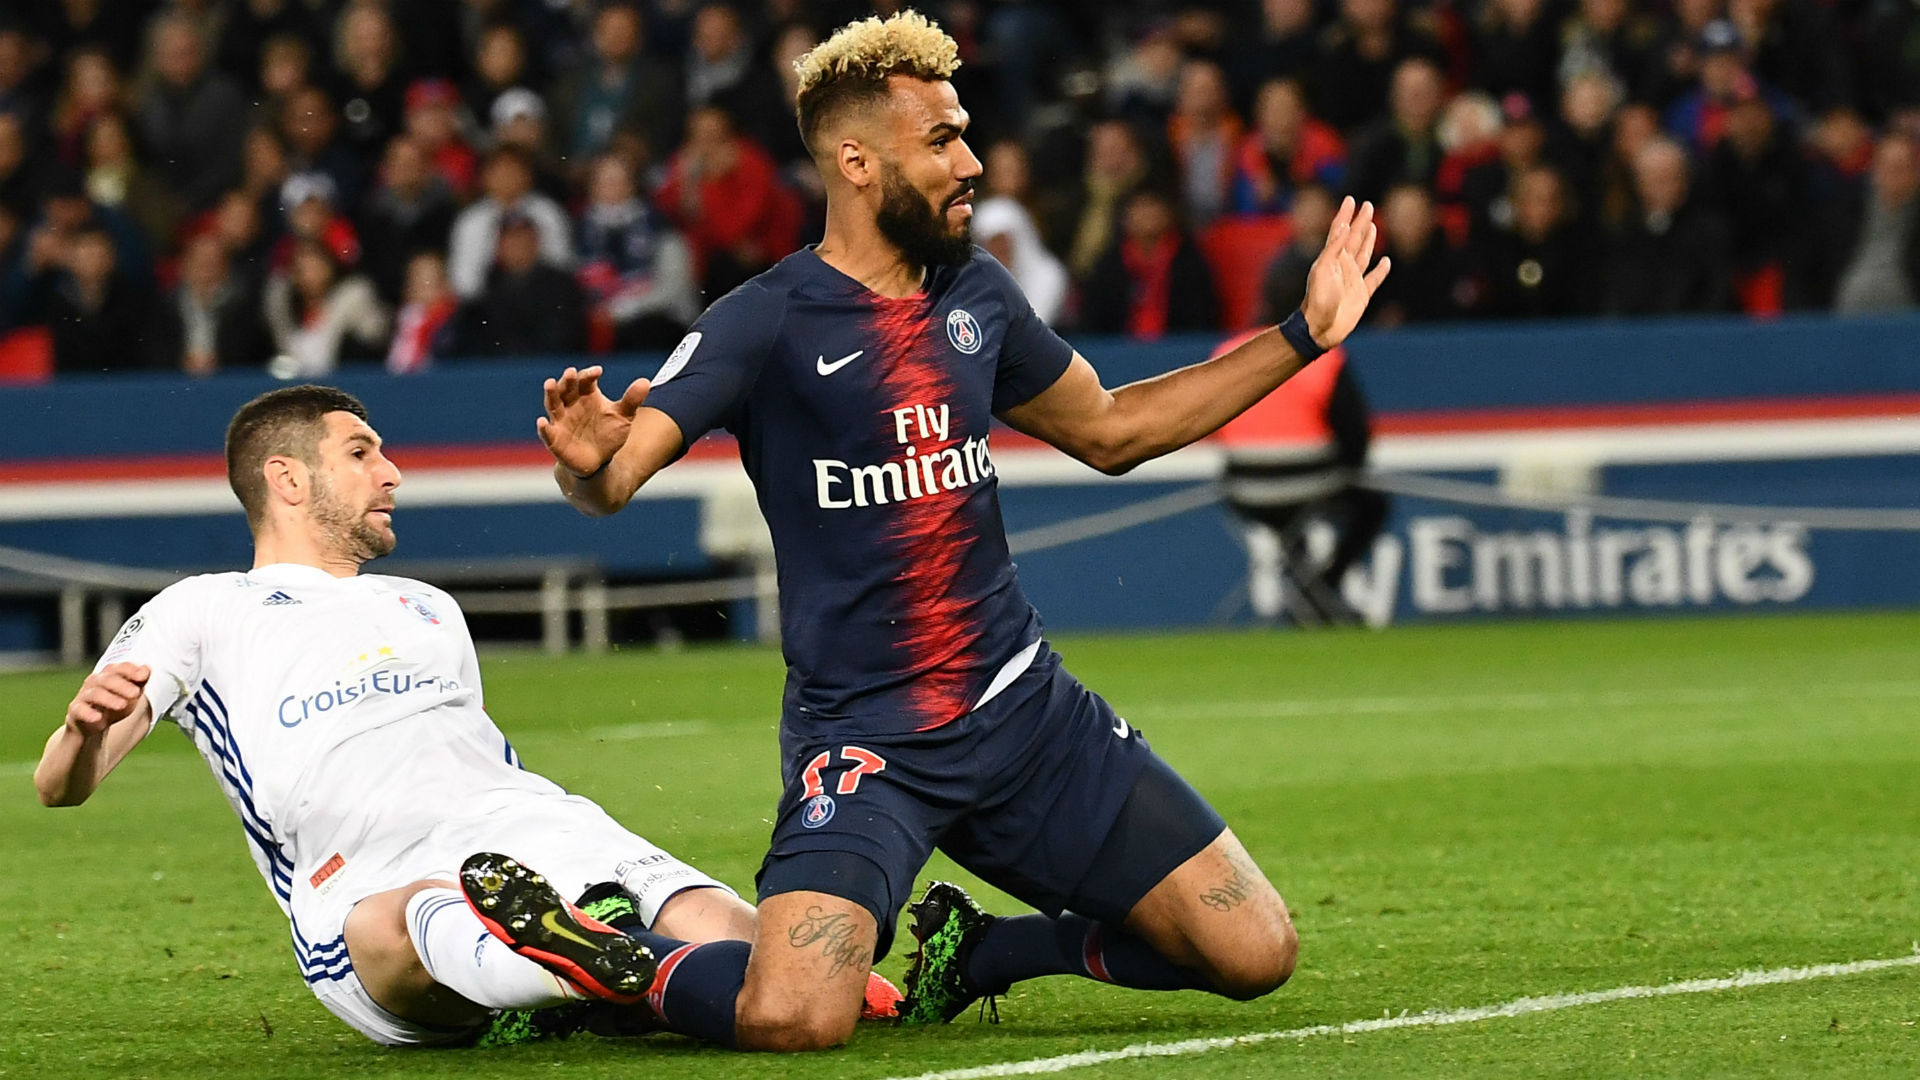 Ligue 1 Report: Paris Saint-Germain v Strasbourg 07 April 2019